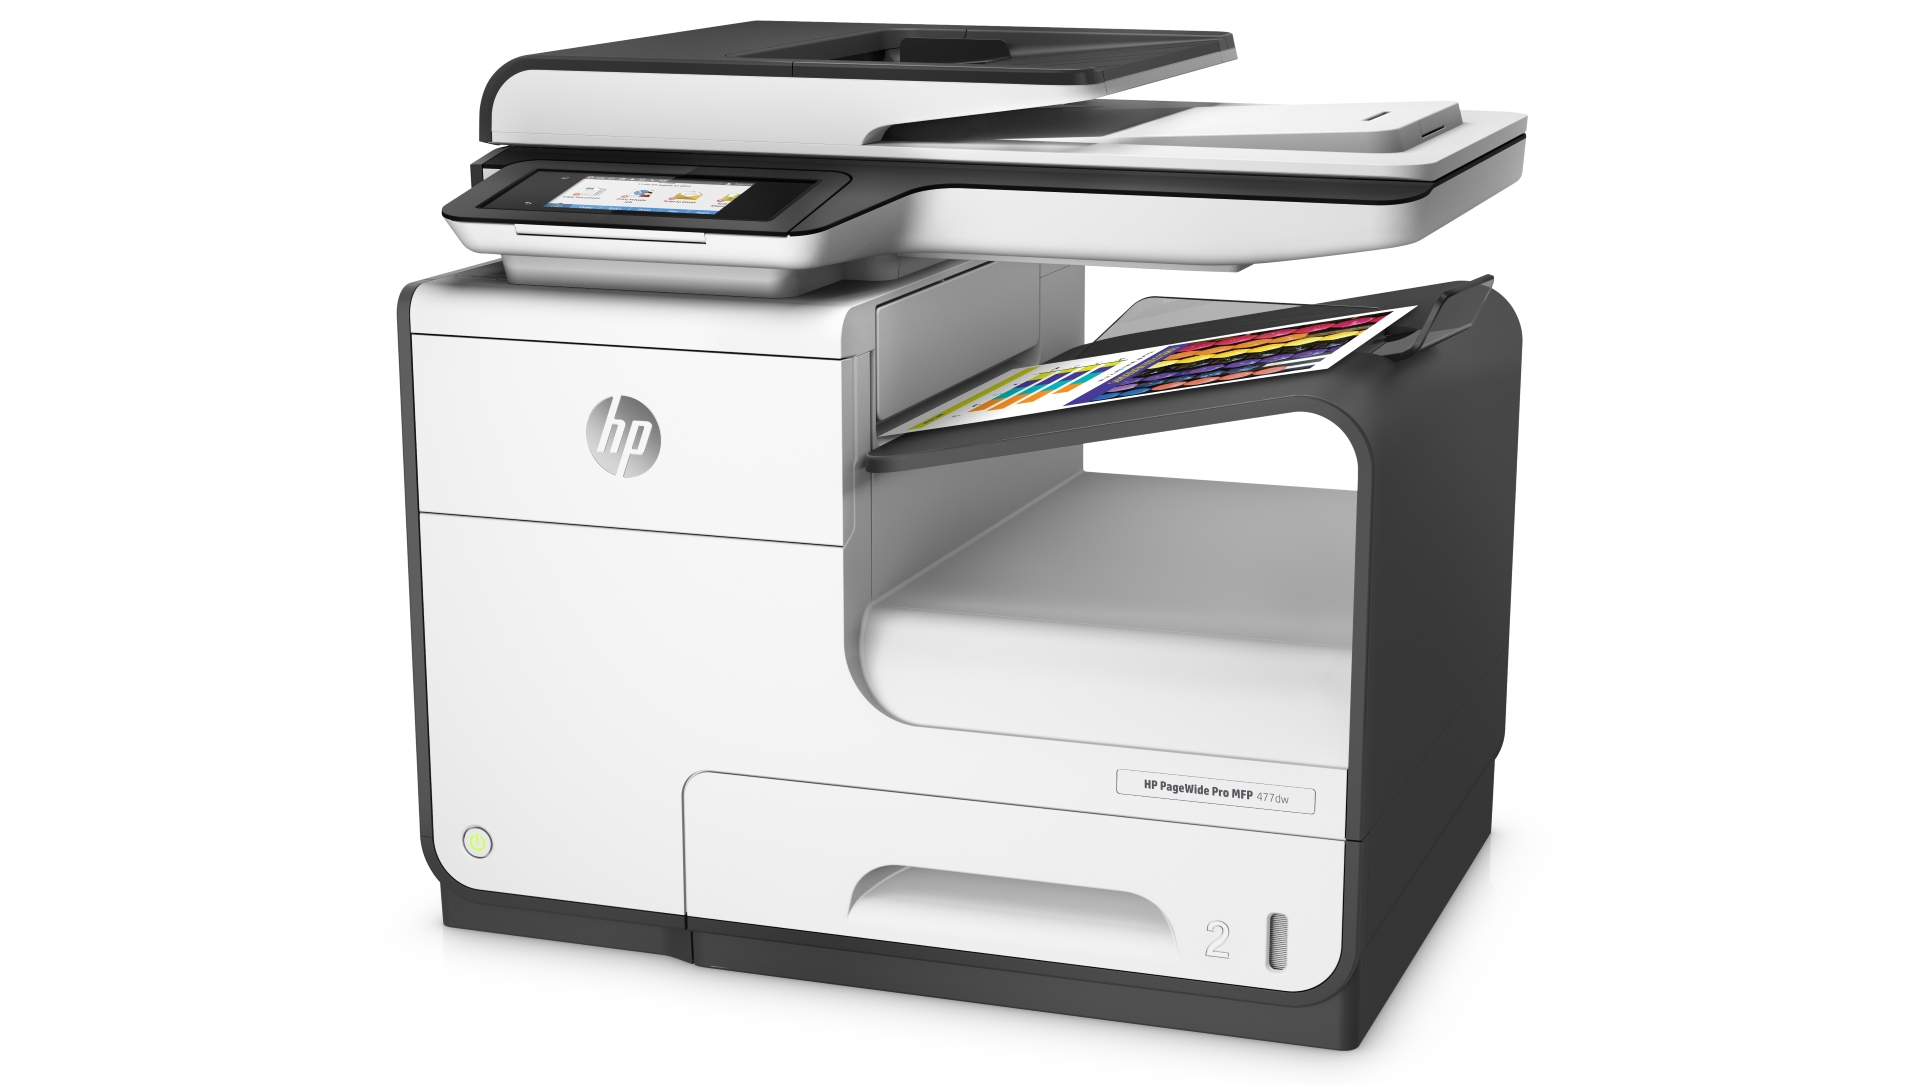 Fabulous This Mfp Is A Brilliant Printer For Small Offices Best Color Laser Printer Cost Per Page